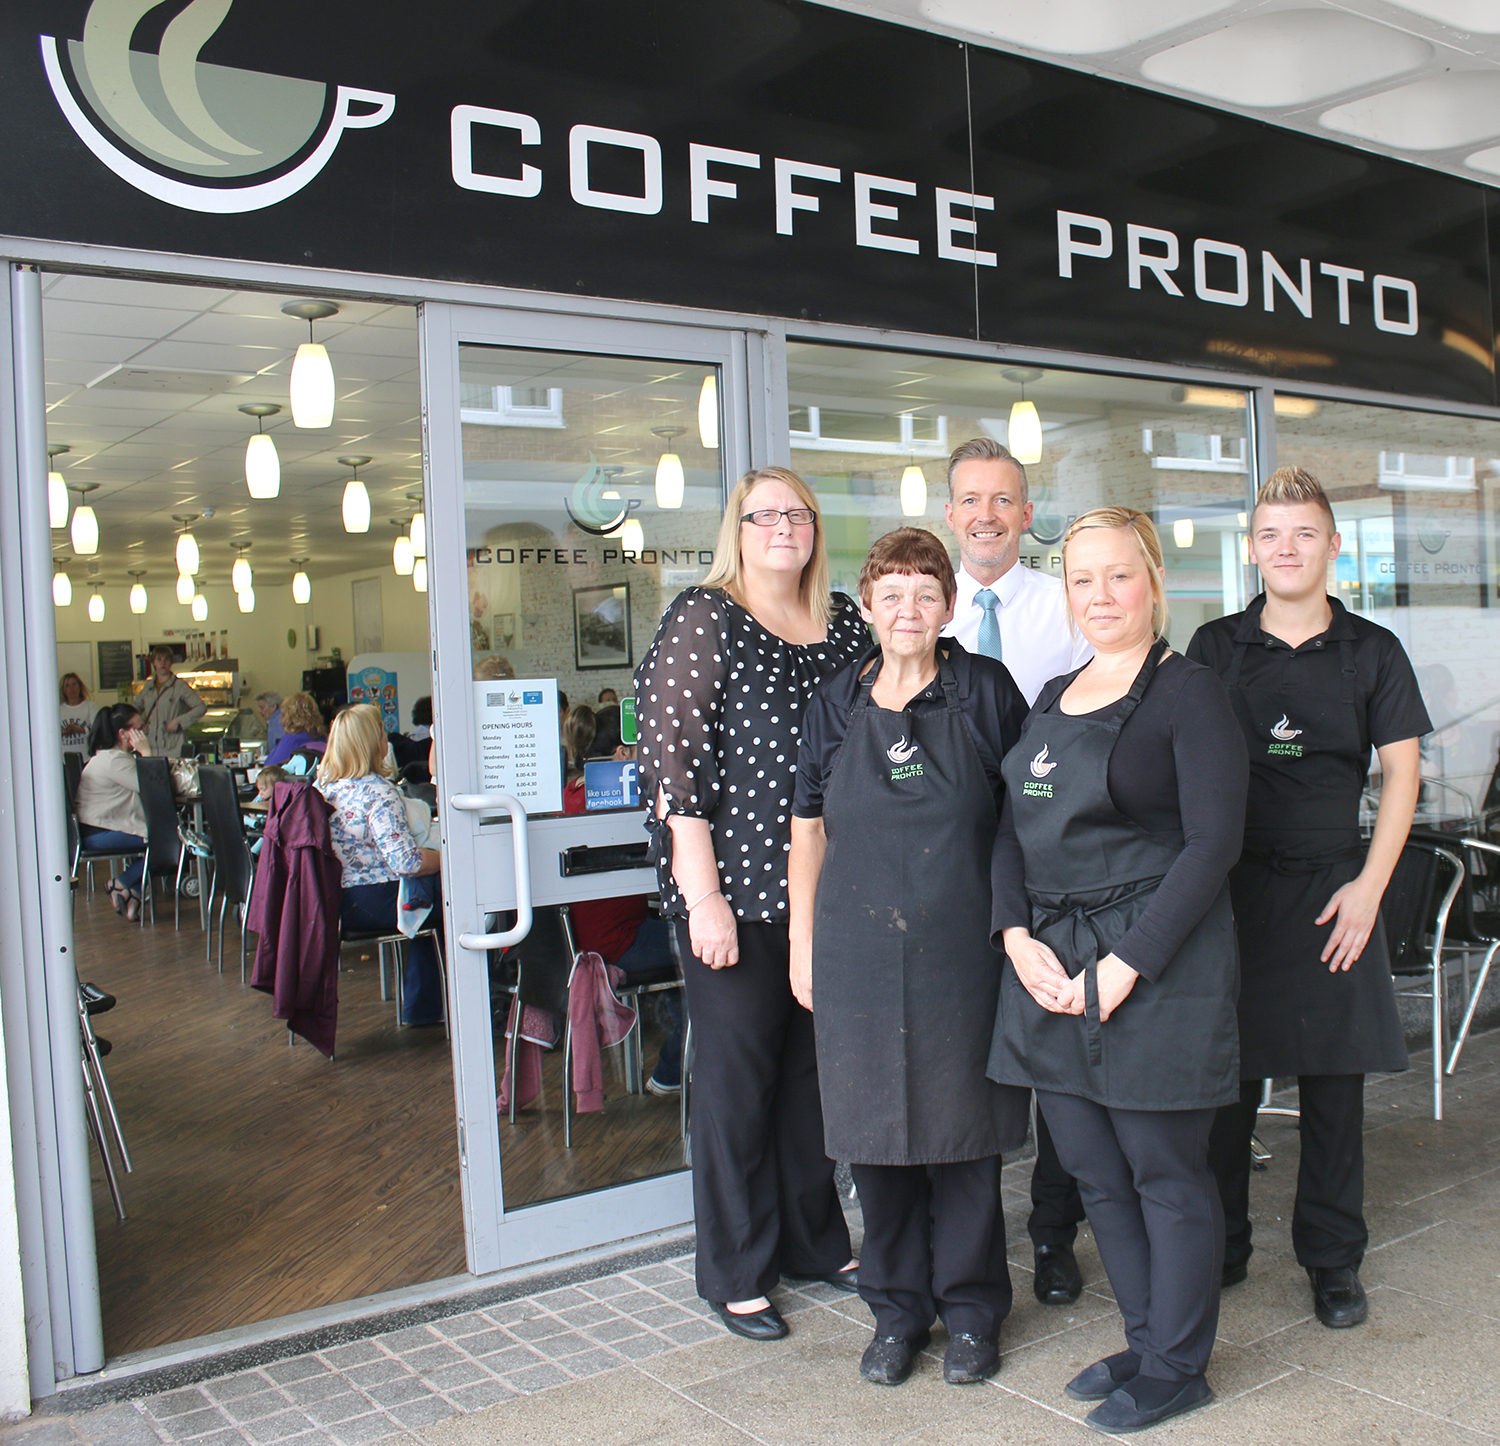 Coffee Pronto's Special Service for Everyone